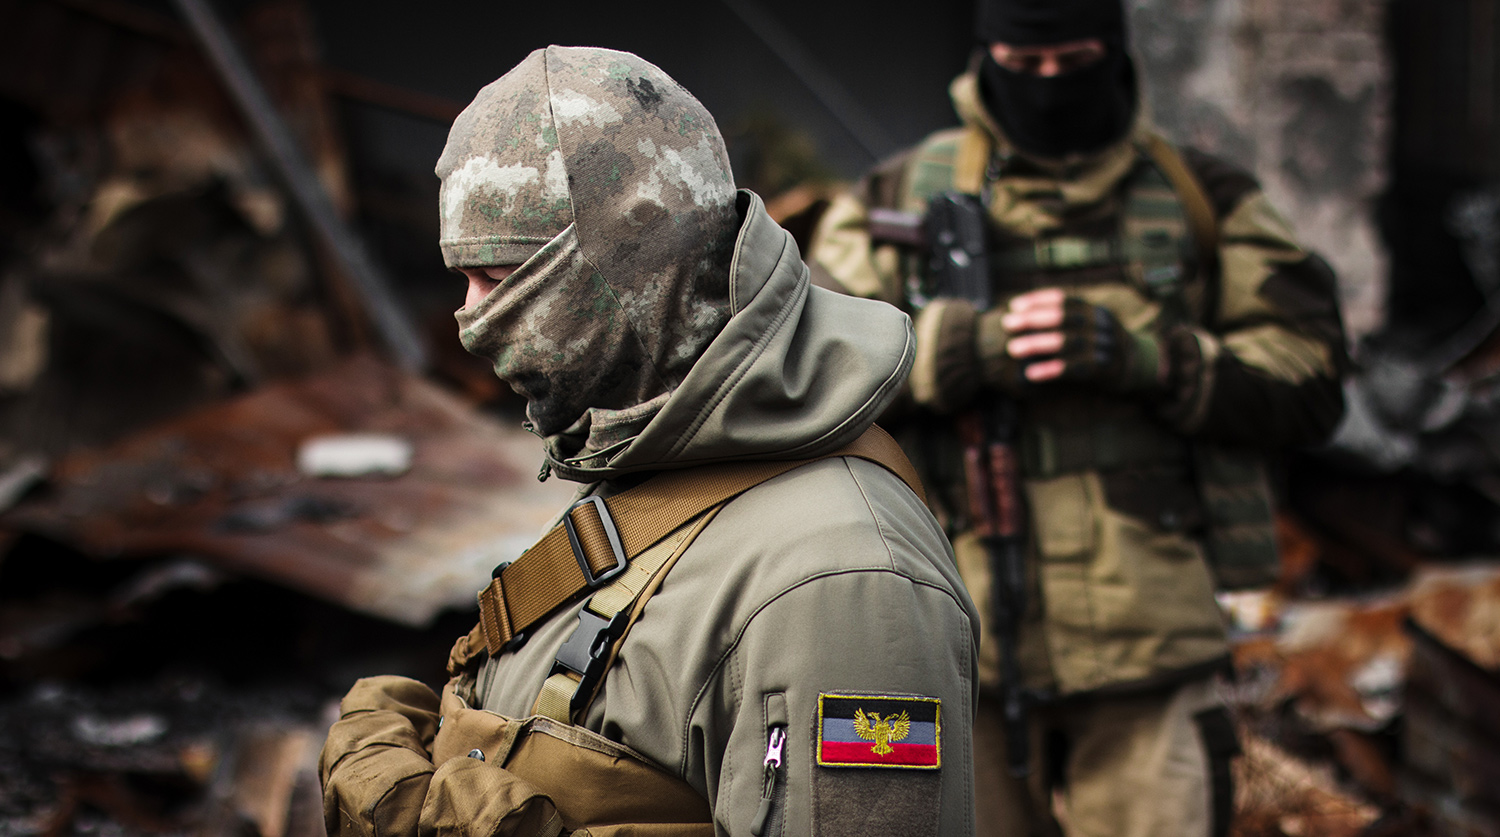 DPR reports 11 violations of ceasefire by security forces per day